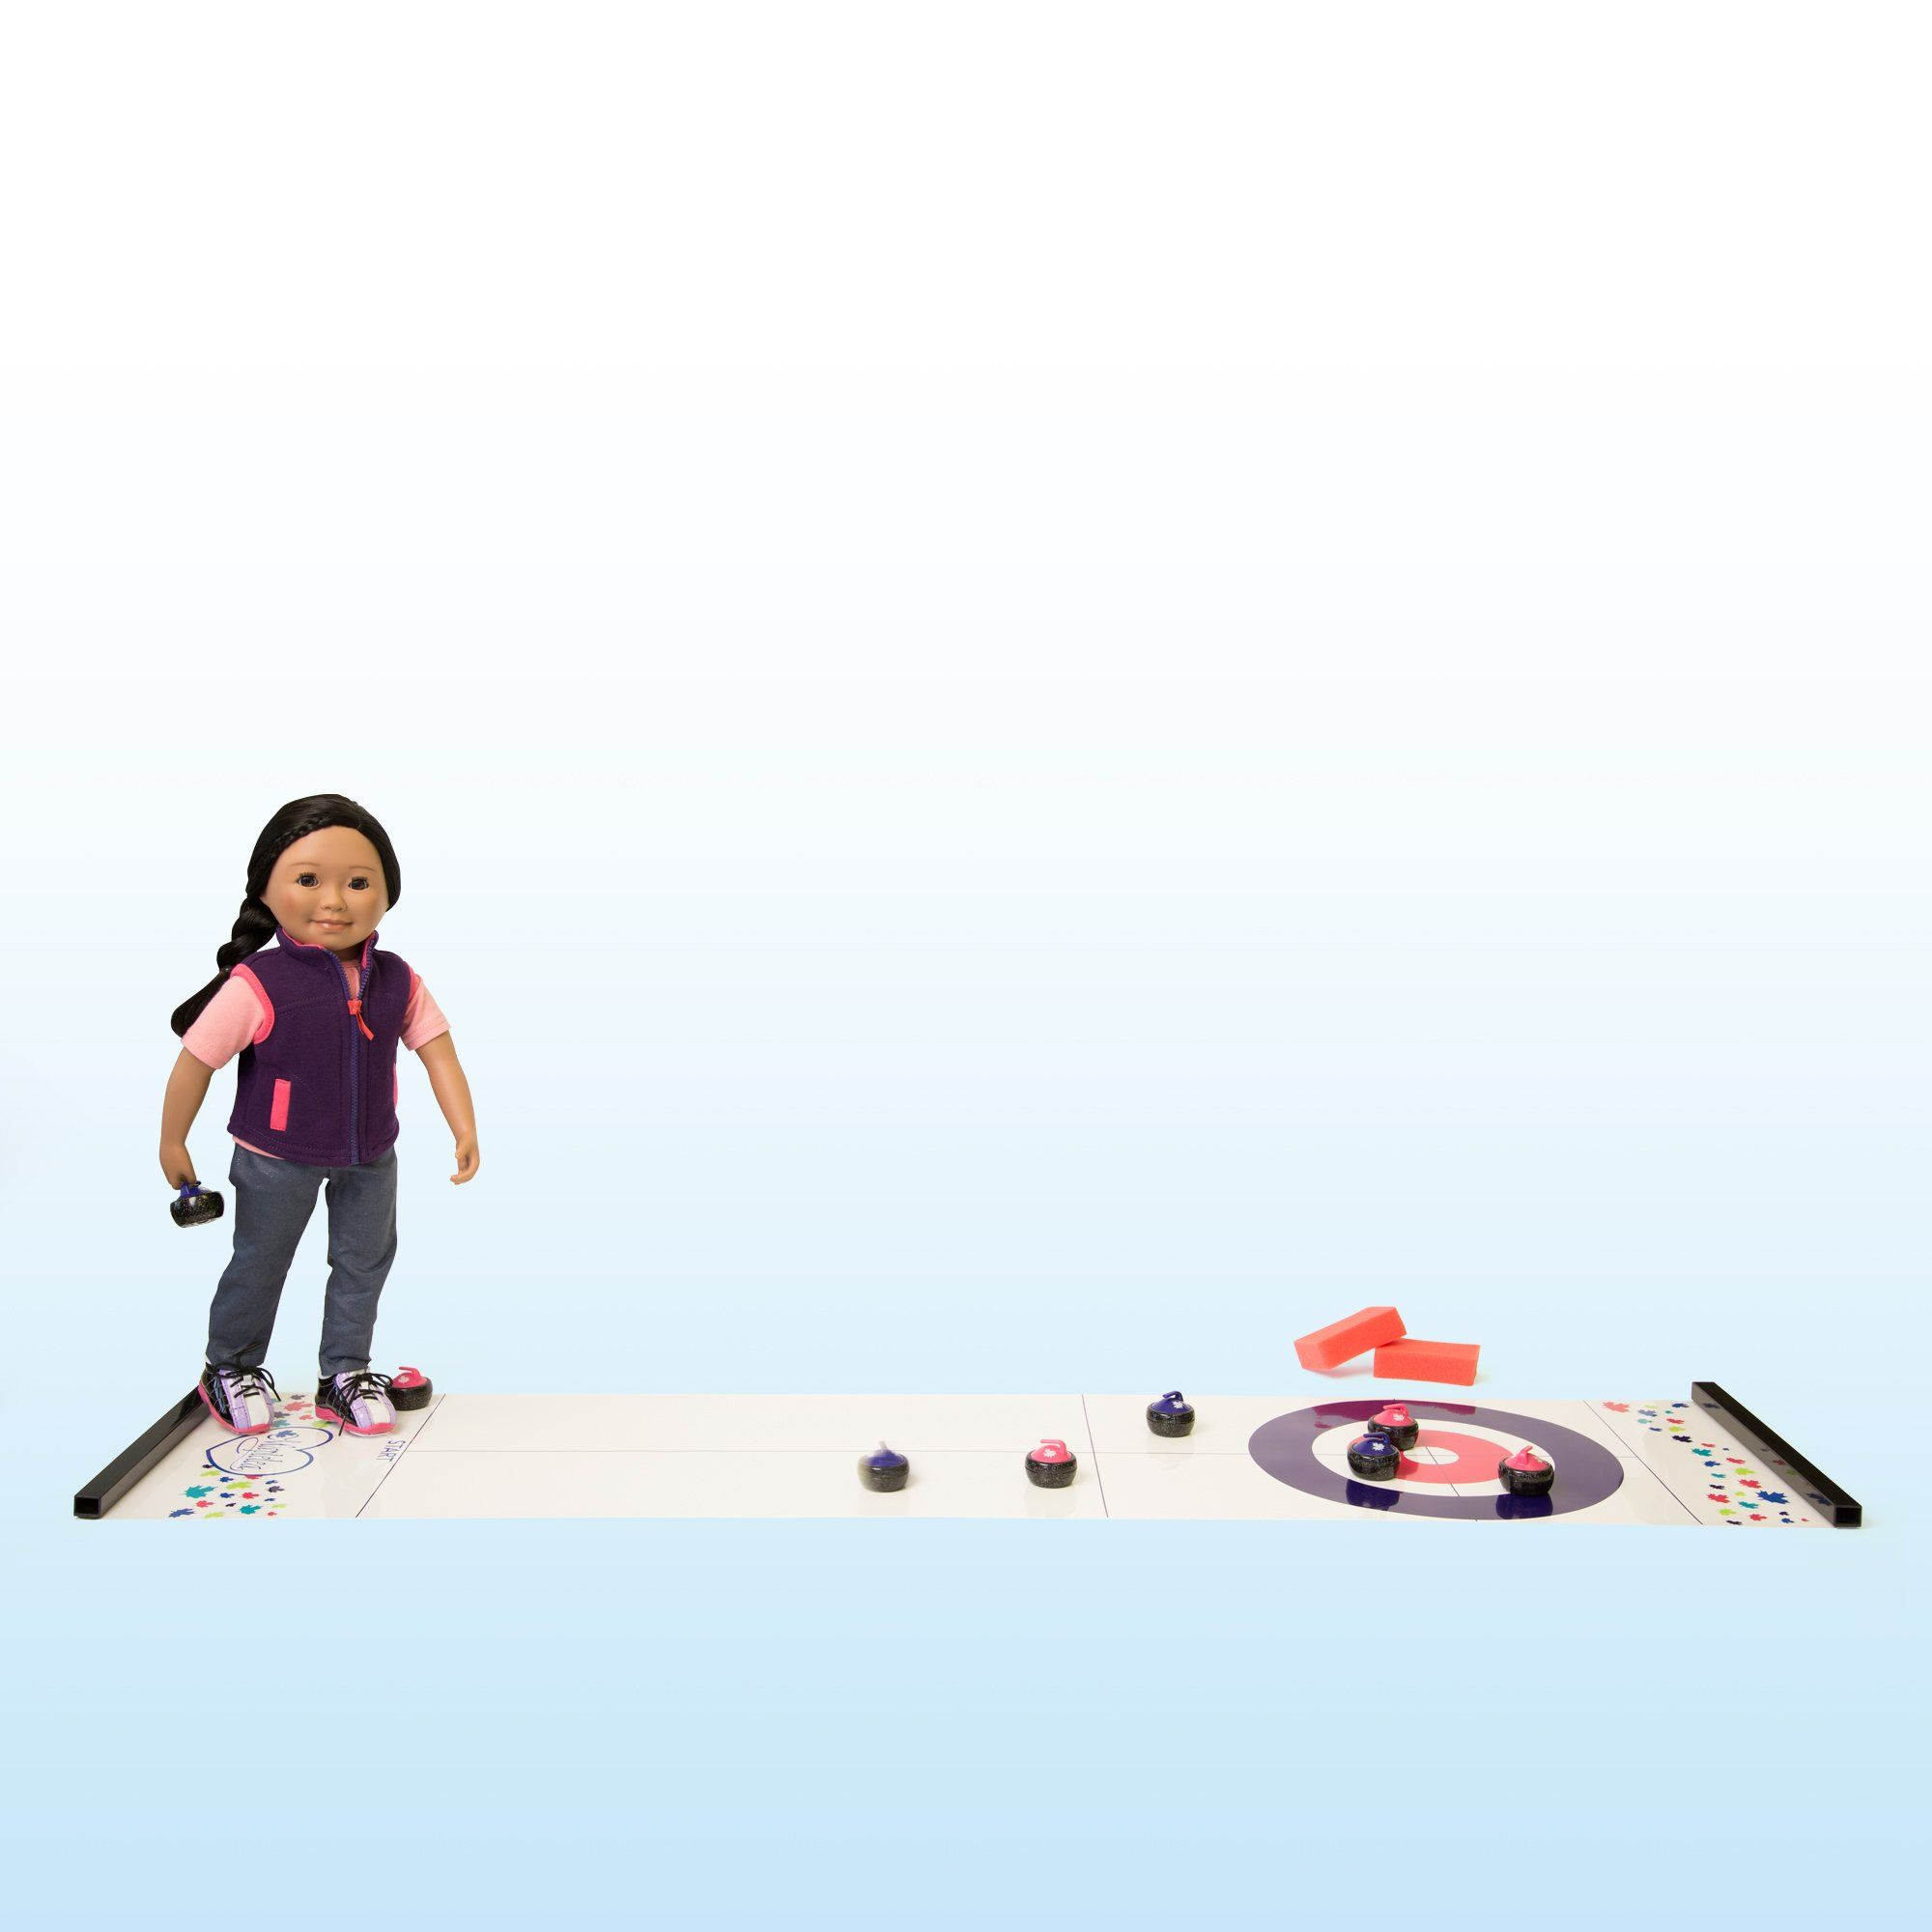 Curling play set with plastic ice surface, 8 curling stones, surface cleaners, booklet, rules and instructions, curling shoes and storage bag. For use with all 18 inch dolls.